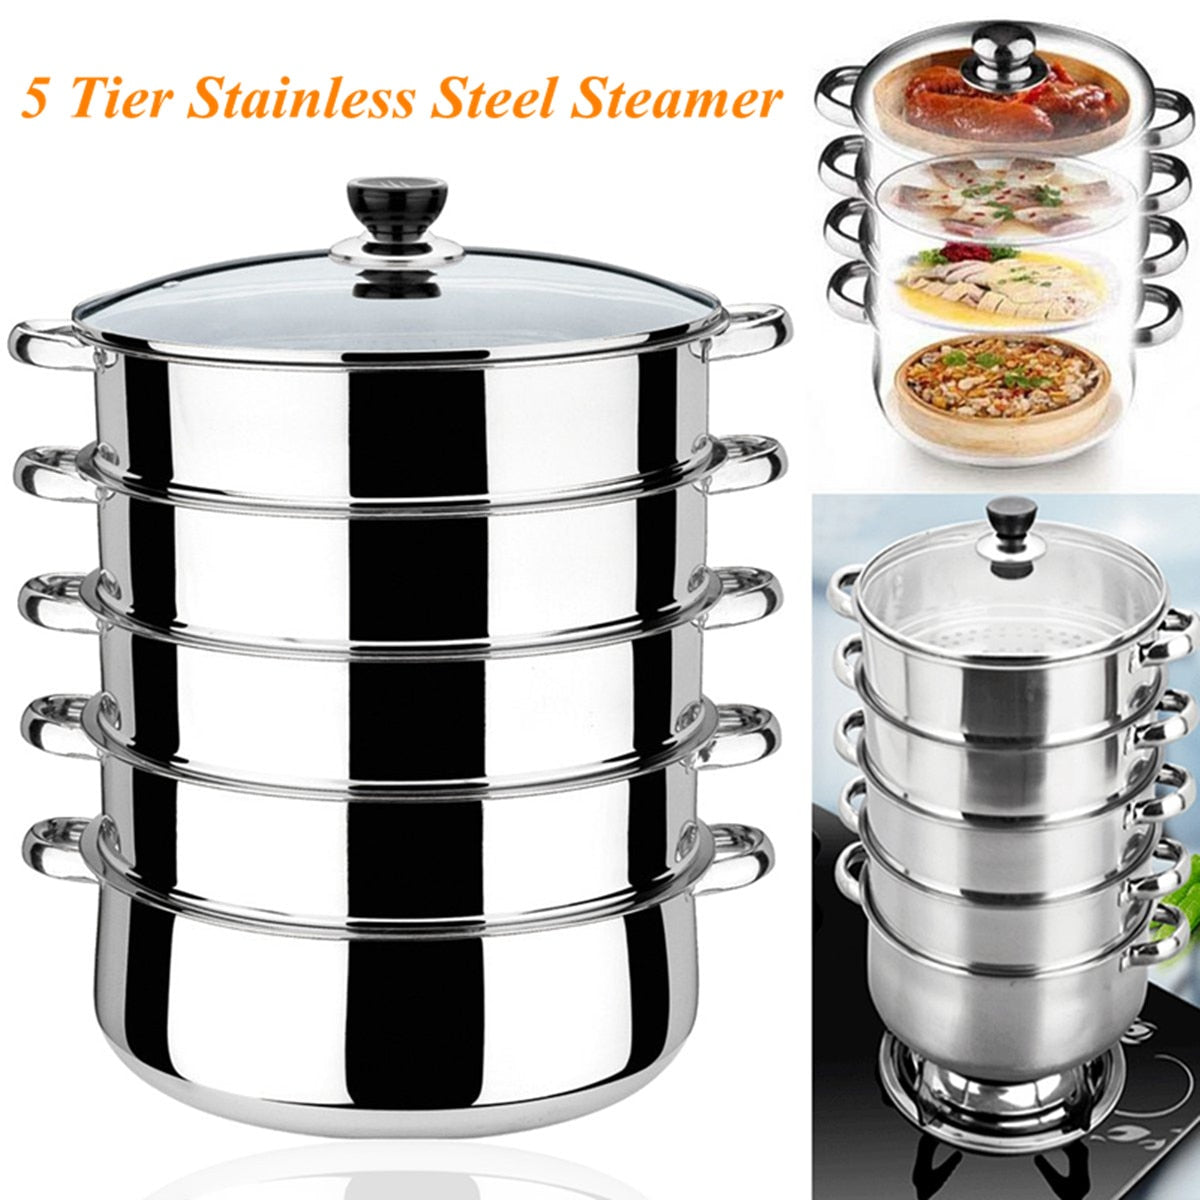 5 Tier Stainless Steel Soup Pot Thick Cooking Steamer Gas Induction Compatible Cooker Saucepan Pot Cookware Instant Pot 30cm